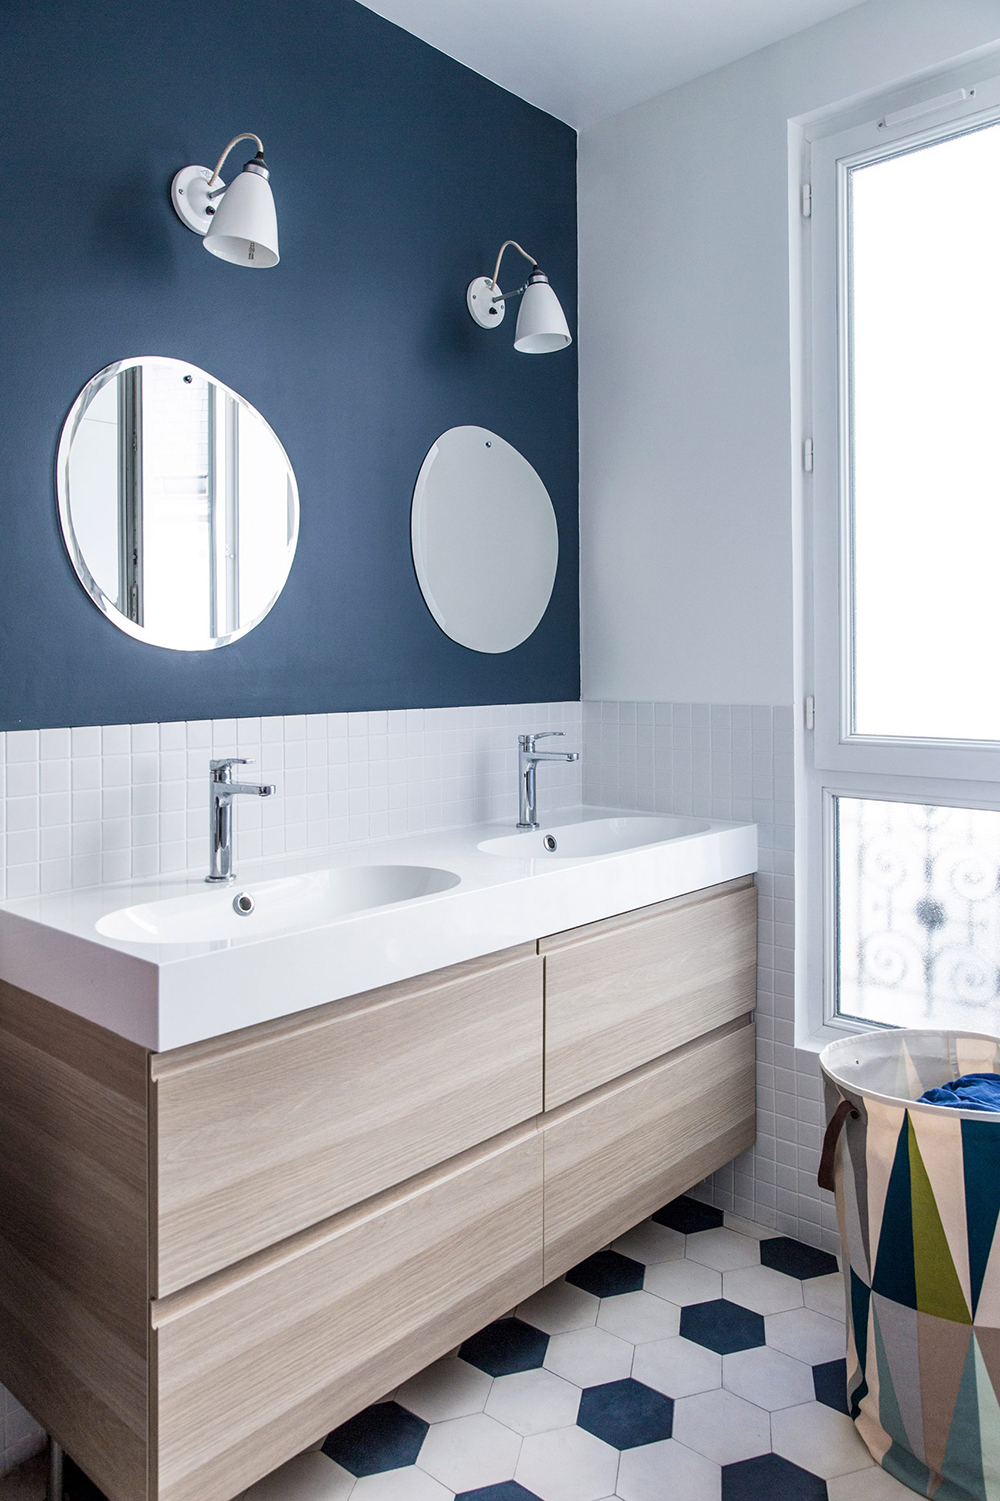 The shades of blue, white and wooden surfaces are creating a perfect harmony in this bathroom - 35 ideas for blue wall colour in home decoration | Aliz's Wonderland